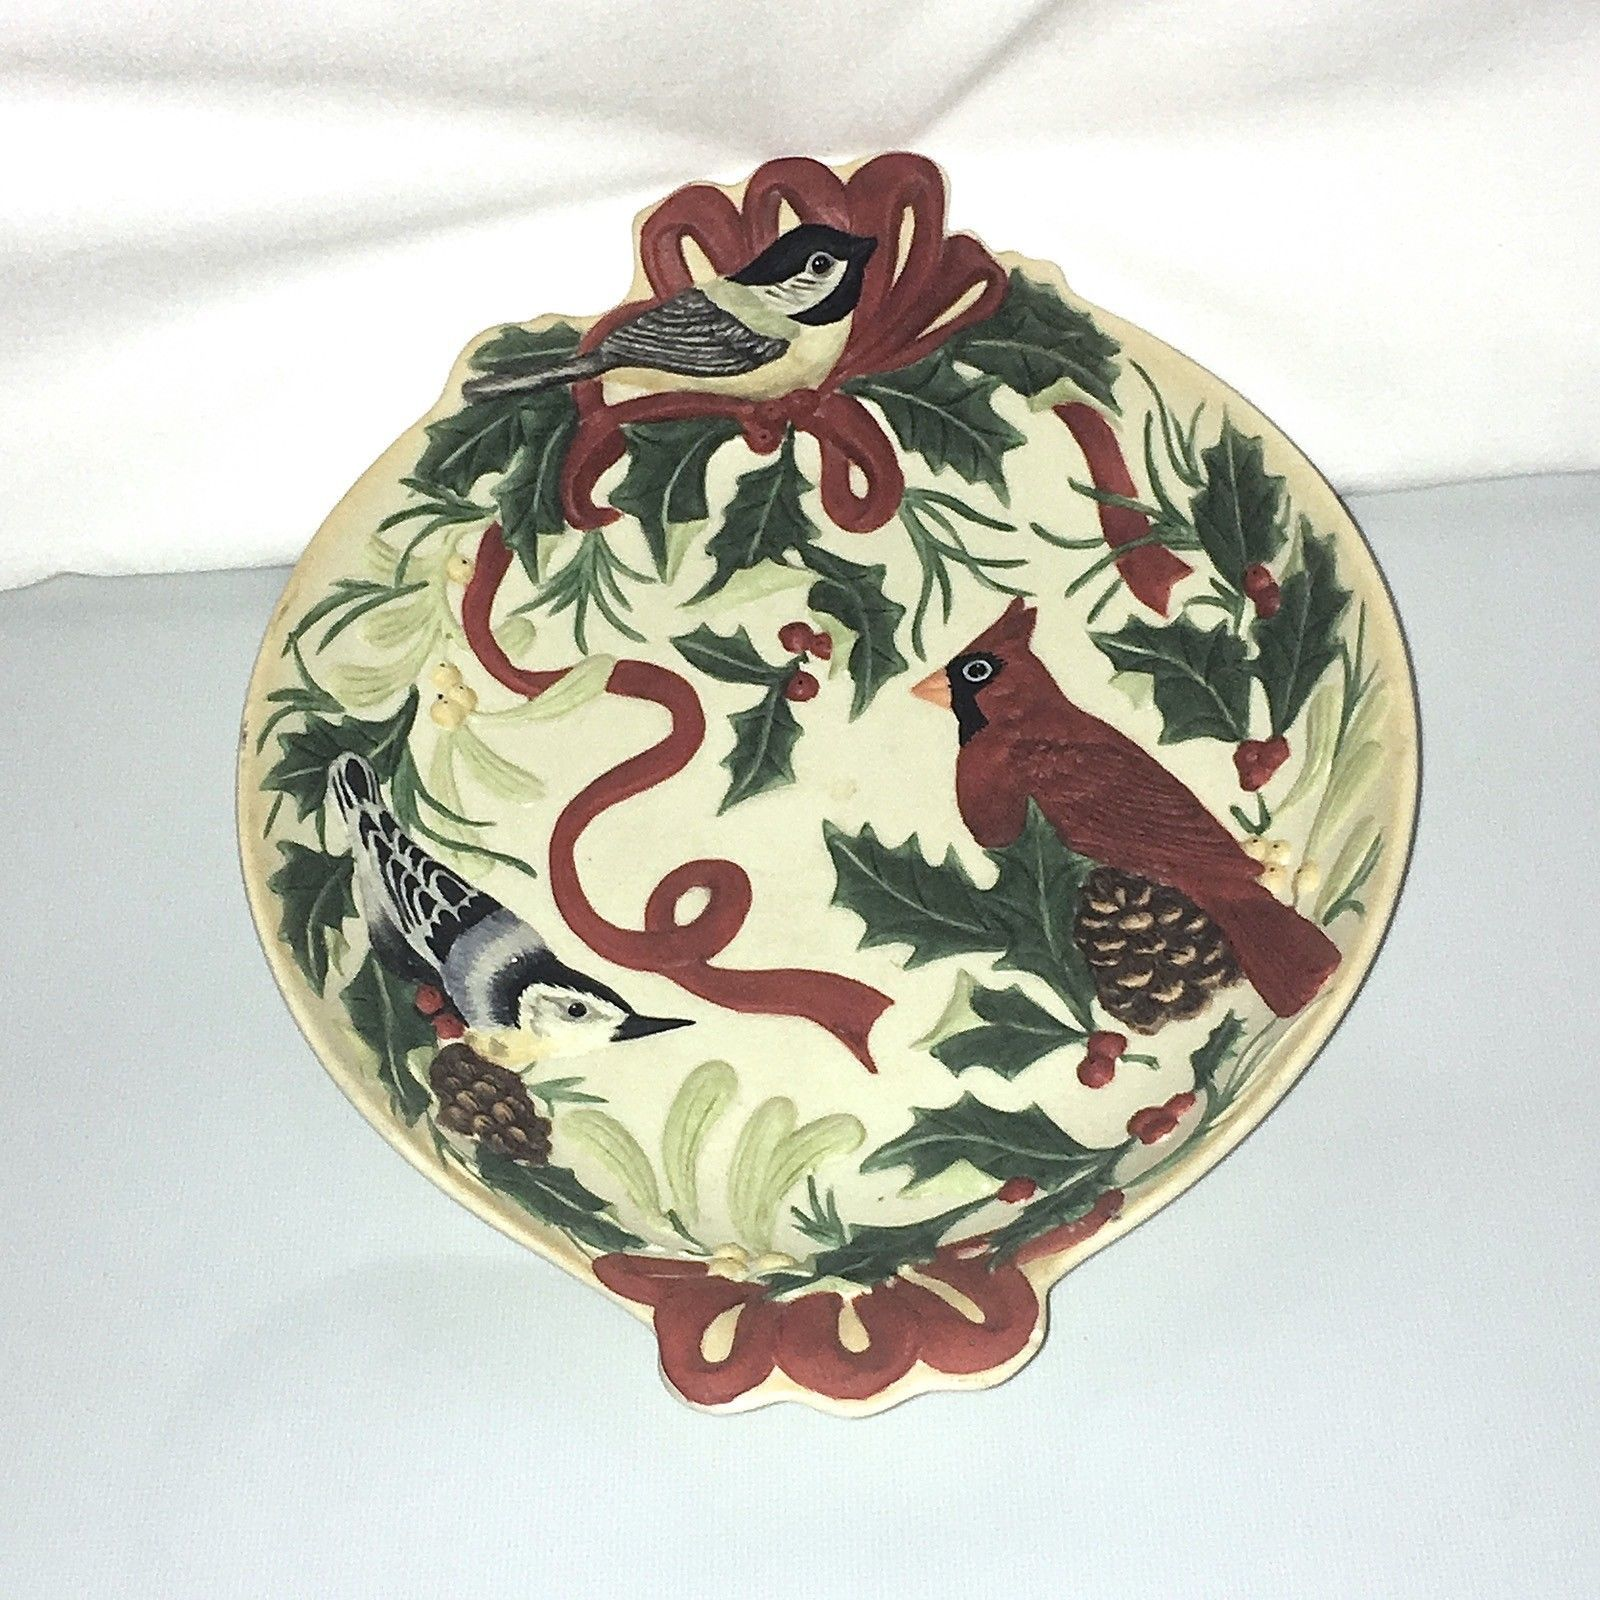 Lenox holiday candy dish 1 listing lenox winter greetings double tabbed handled cardinal chickadee candy dish 2474 m4hsunfo